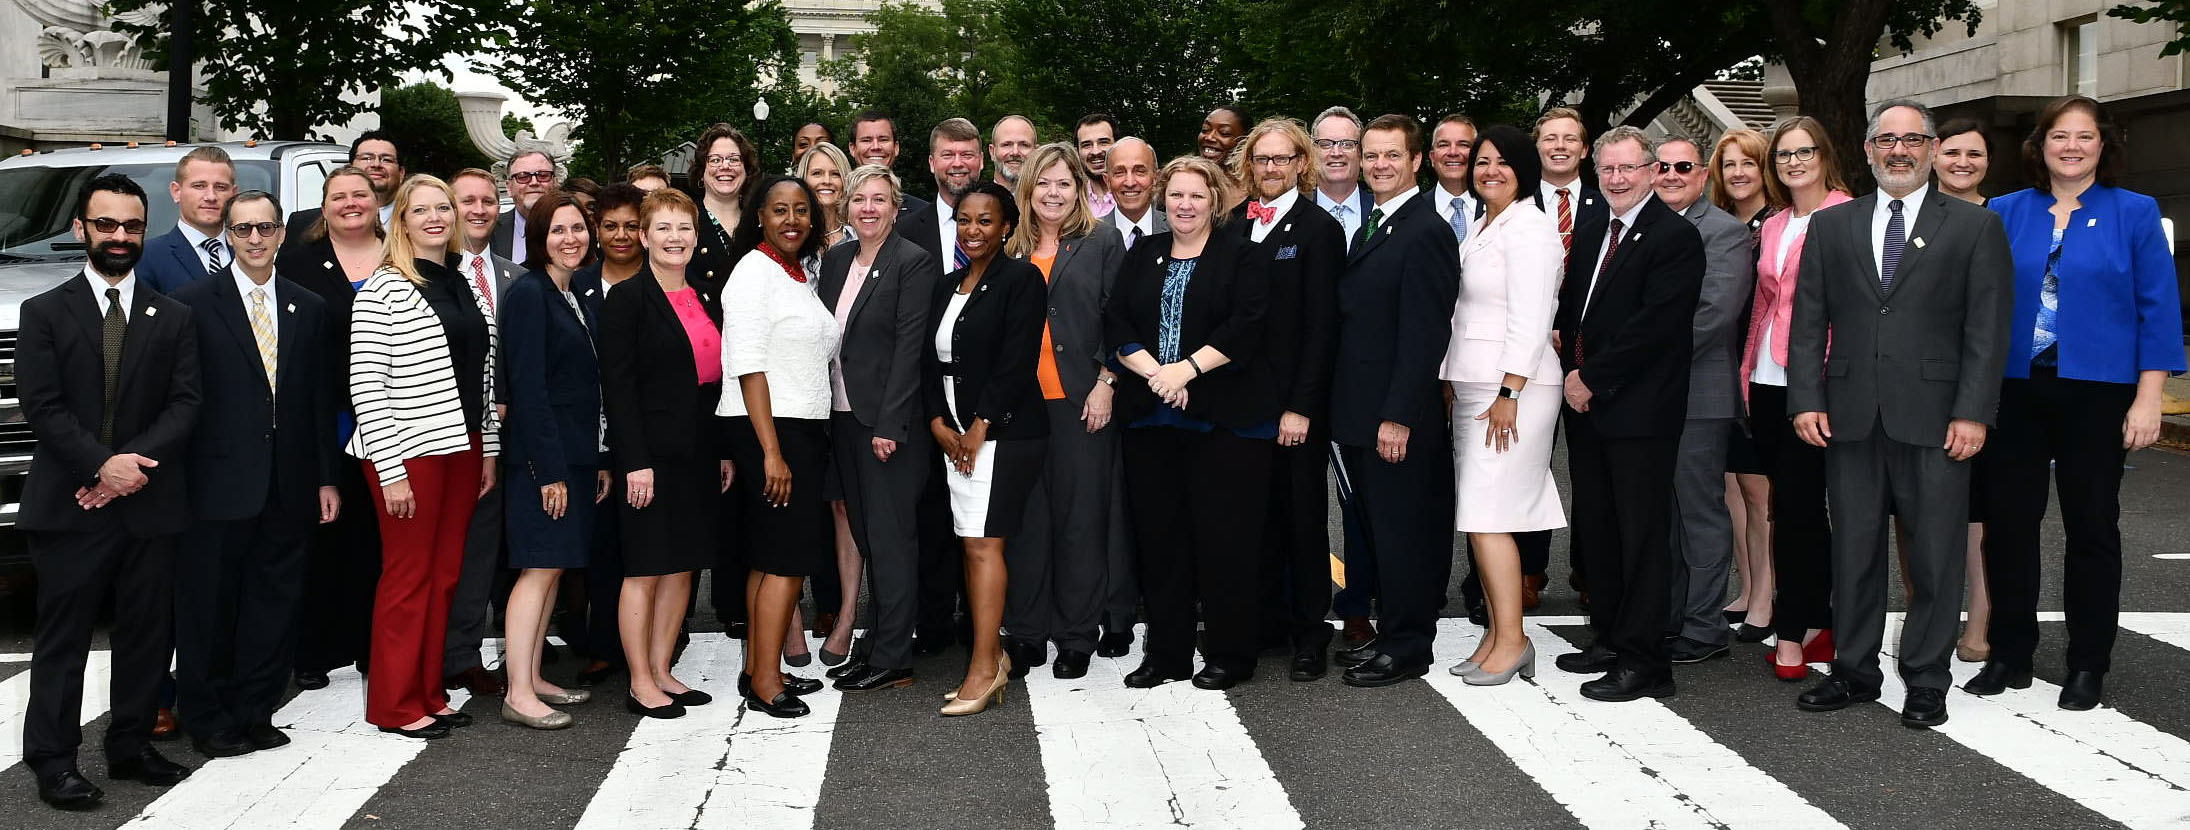 AACRAO members on Hill Day 2018